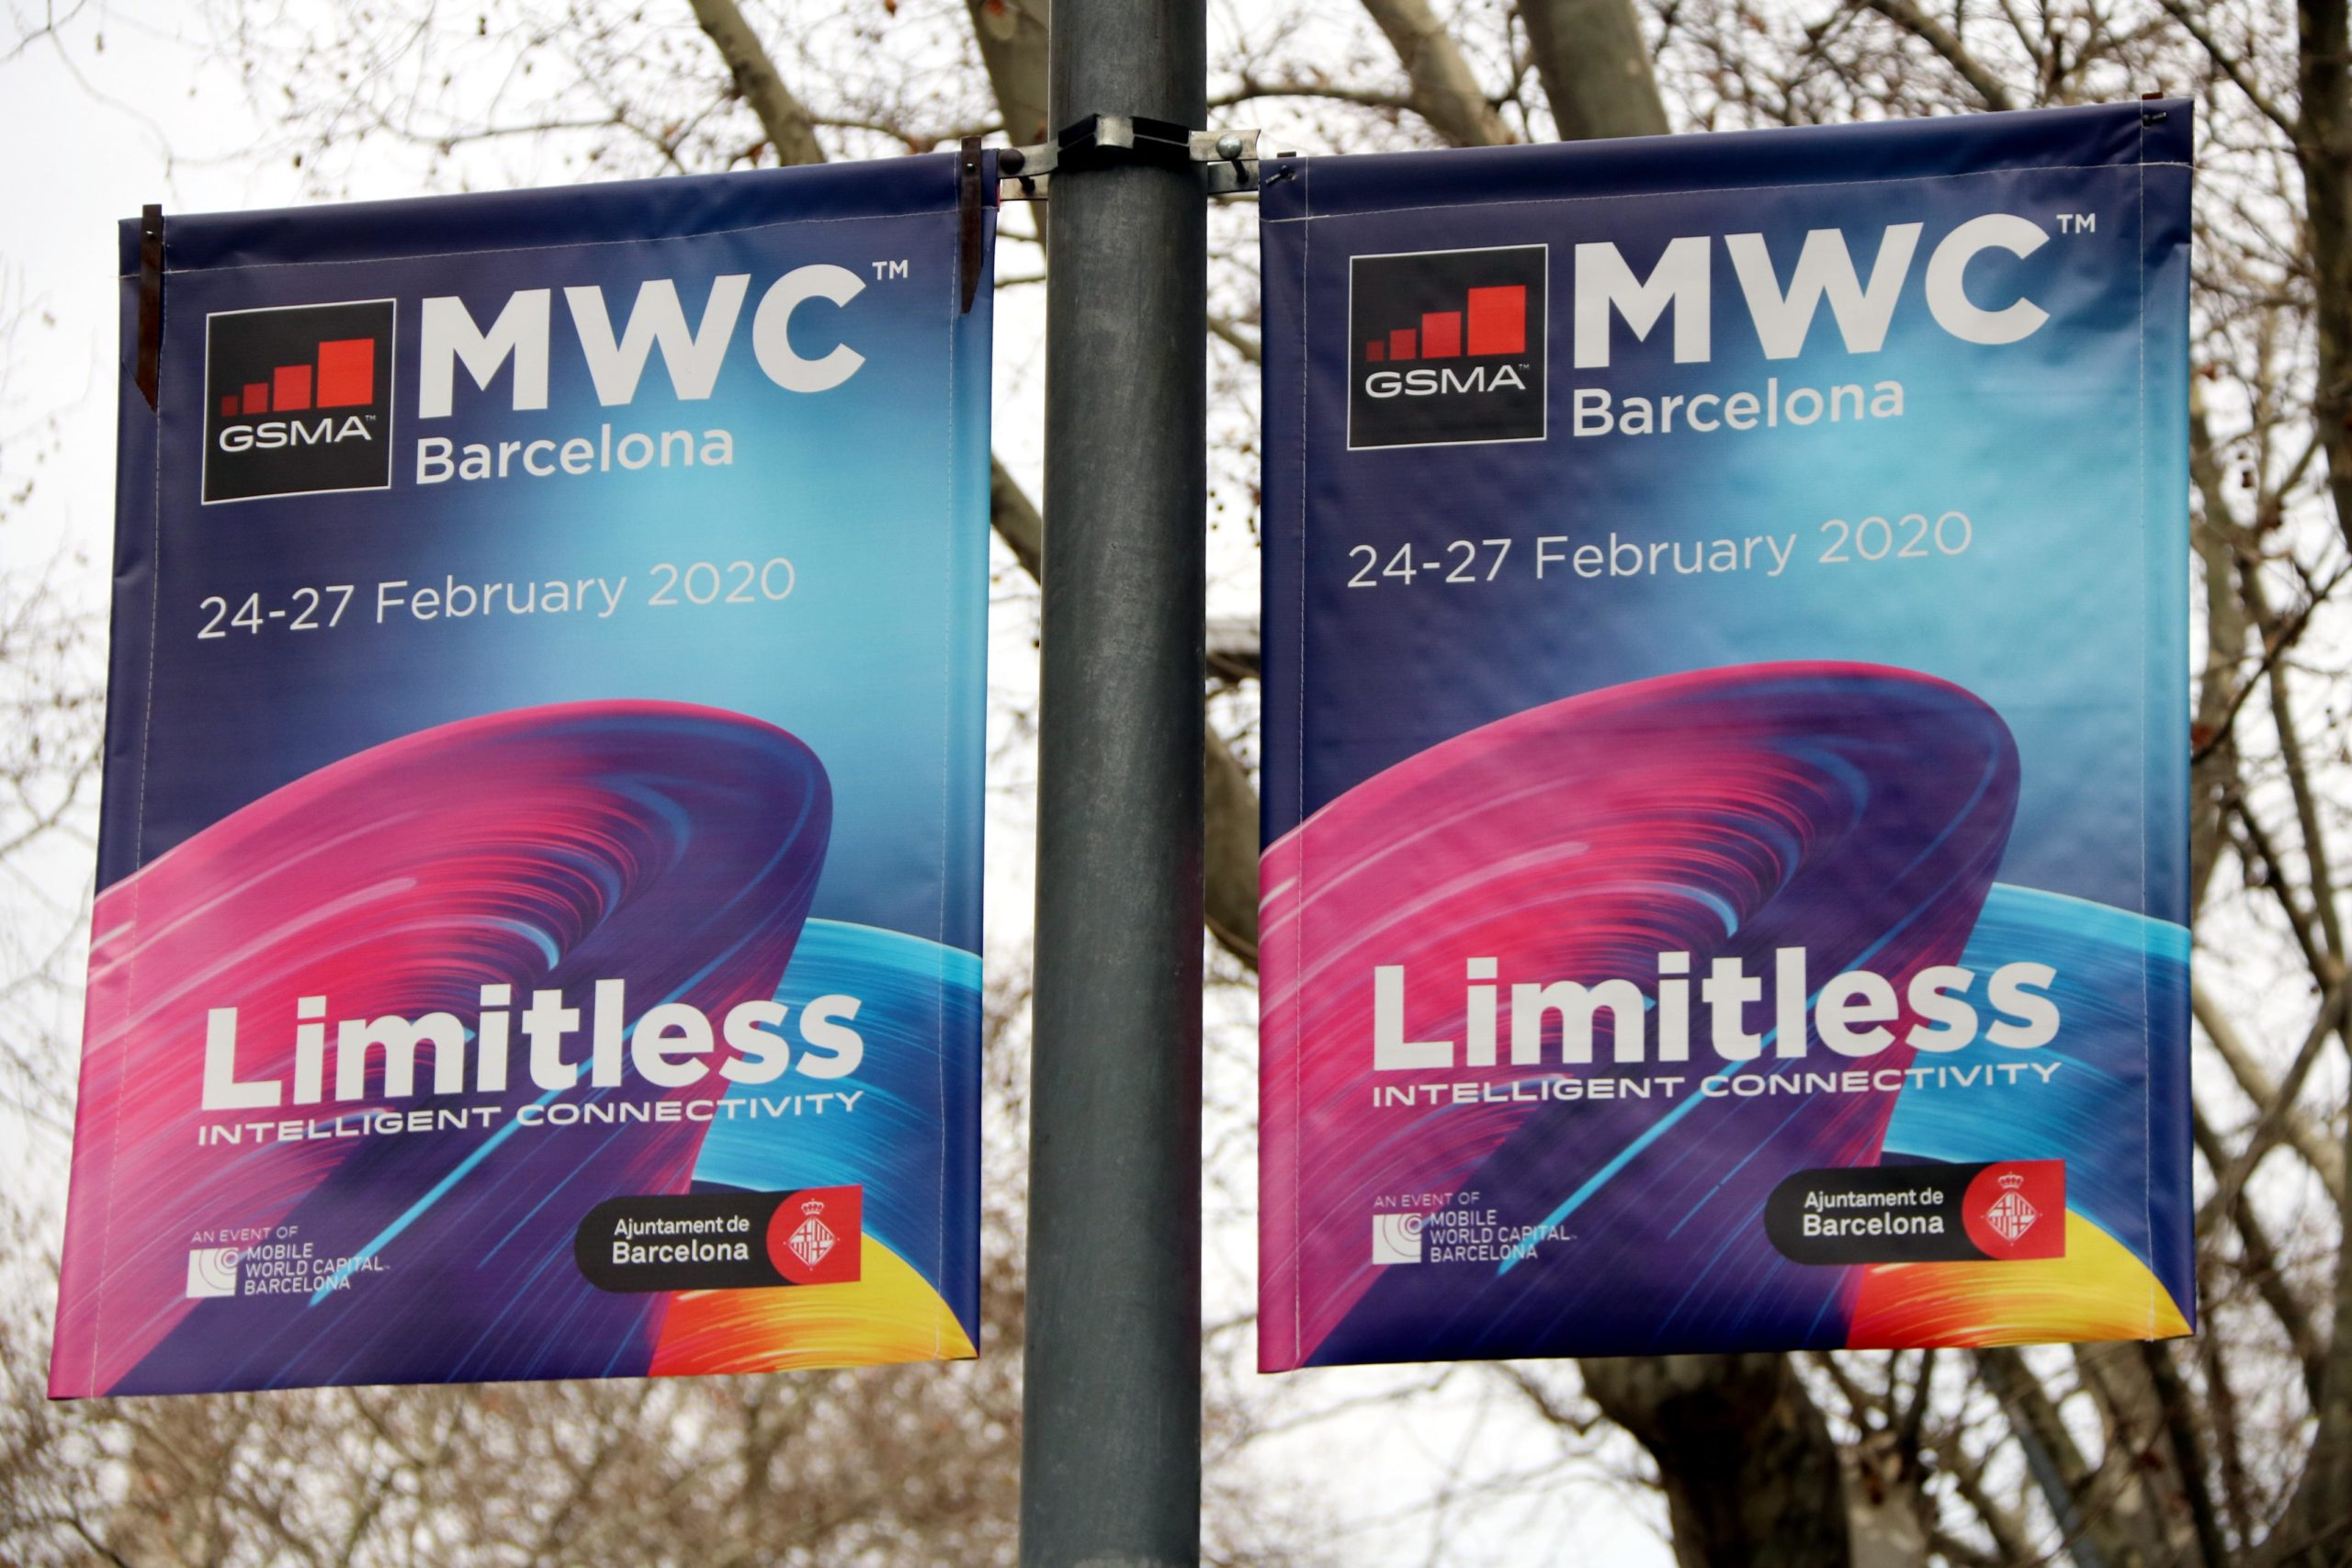 Un operari desmuntant un estand del Mobile World Congress (MWC), l'any passat / ACN - Lluís Sibils